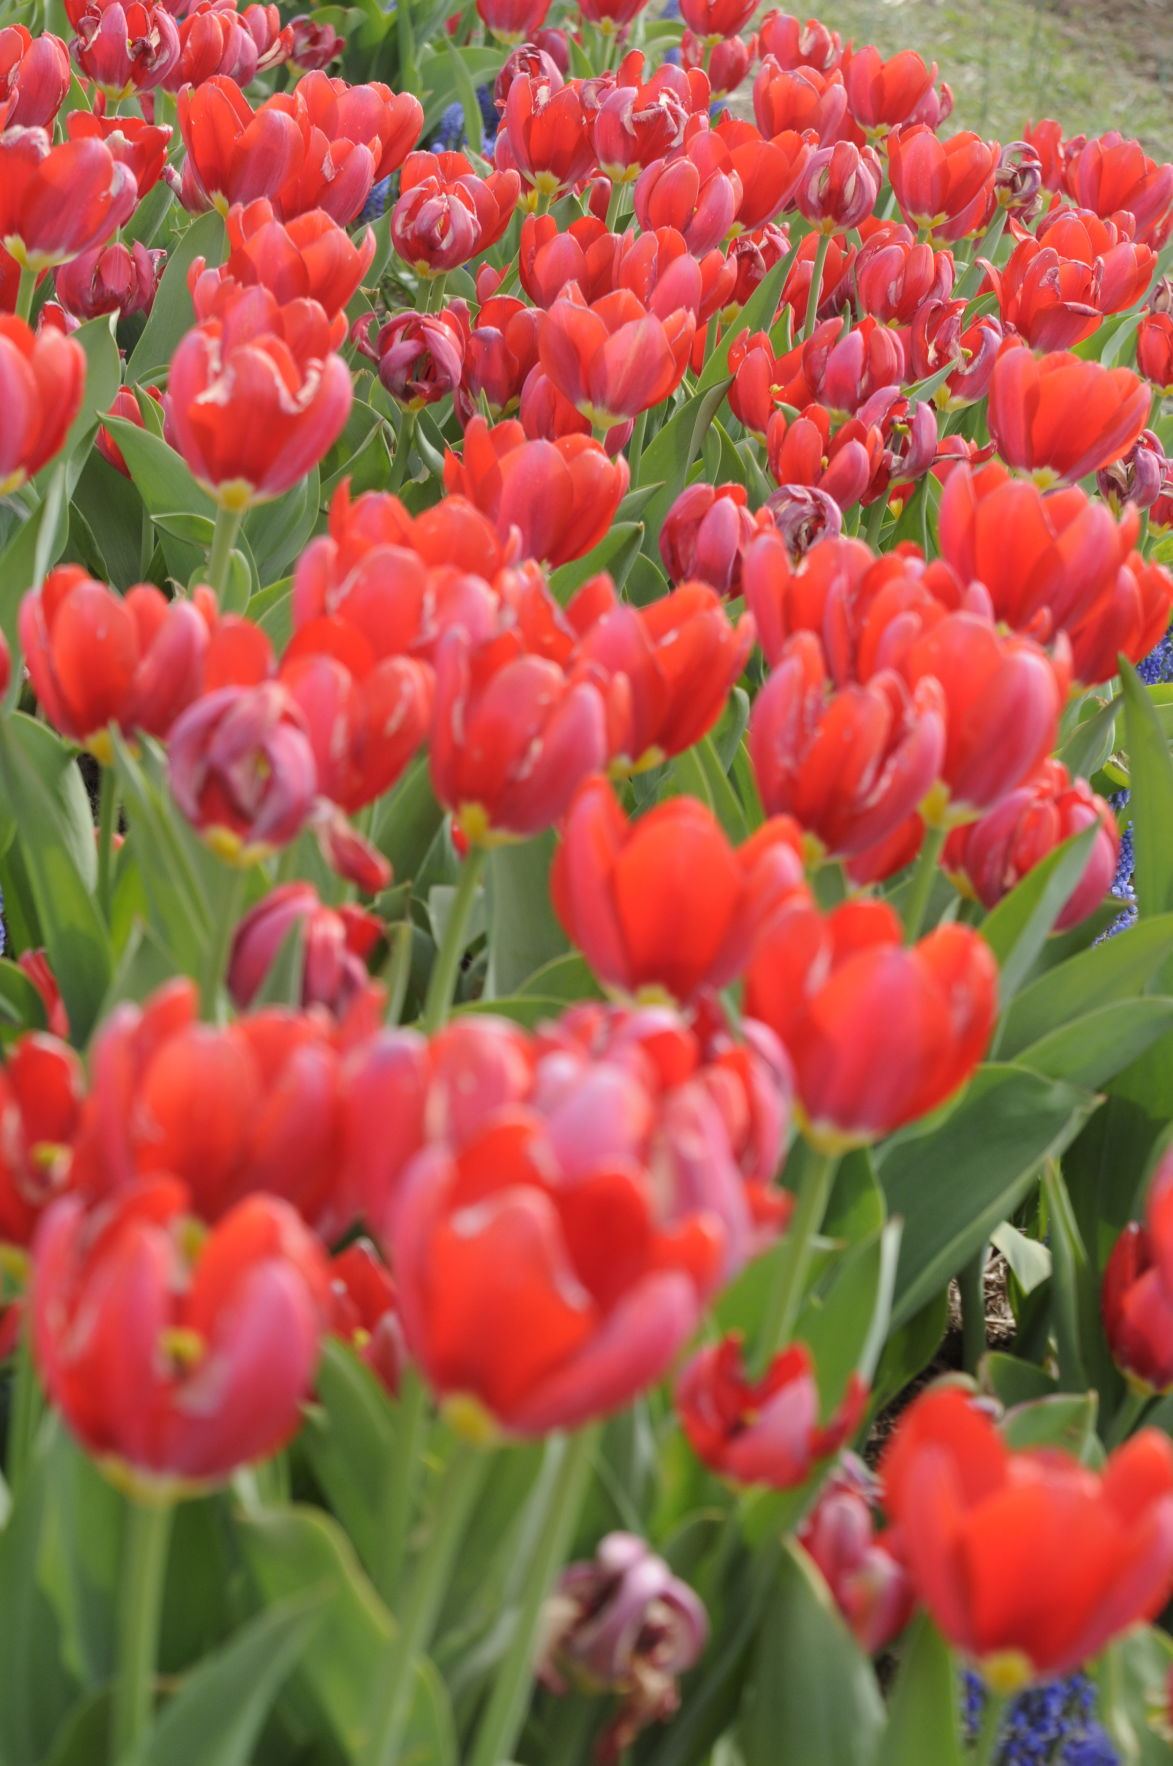 Tulips in bloom at Burnside Farms